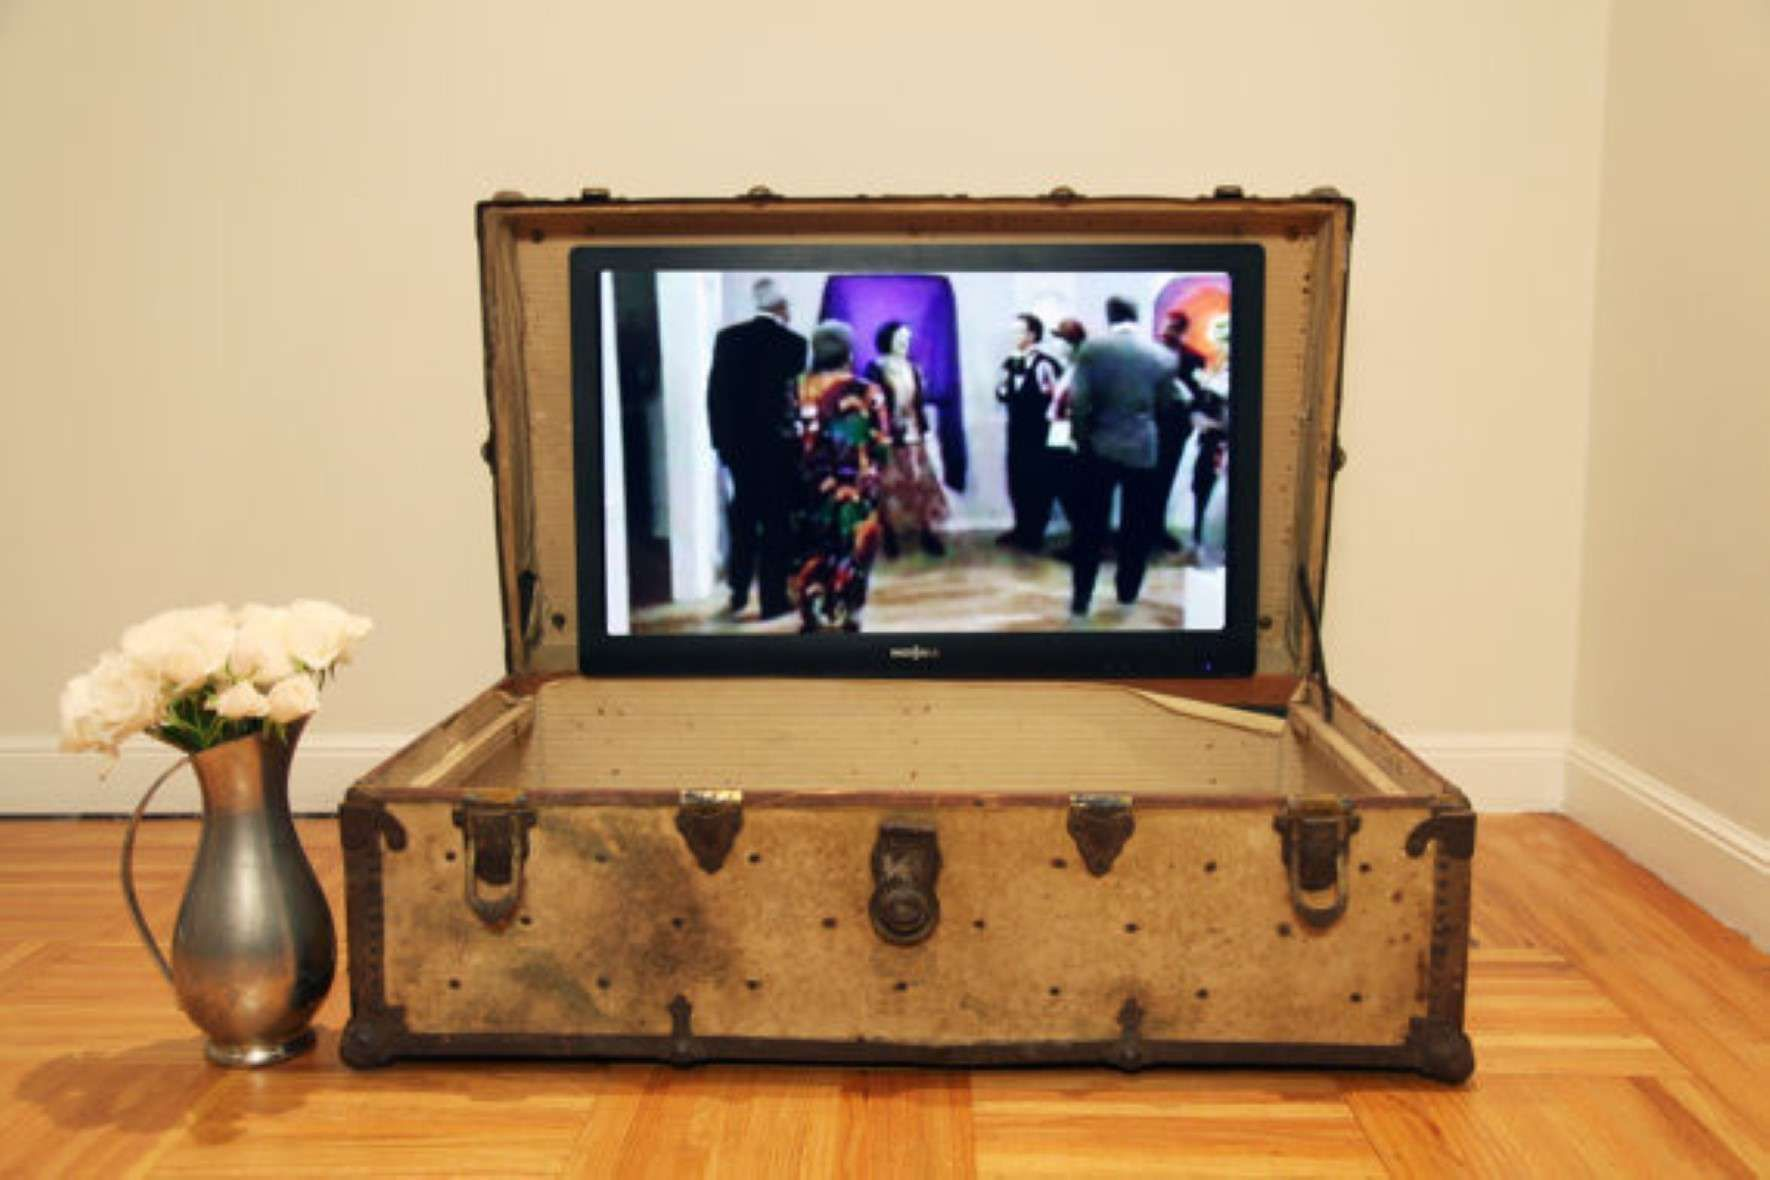 Old And Vintage Cool Homemade Suitcase Tv Stands Ideas Black And White Vintage Backgrounds Living Room Diy Vintage Fireplace Living Room Tv Wall